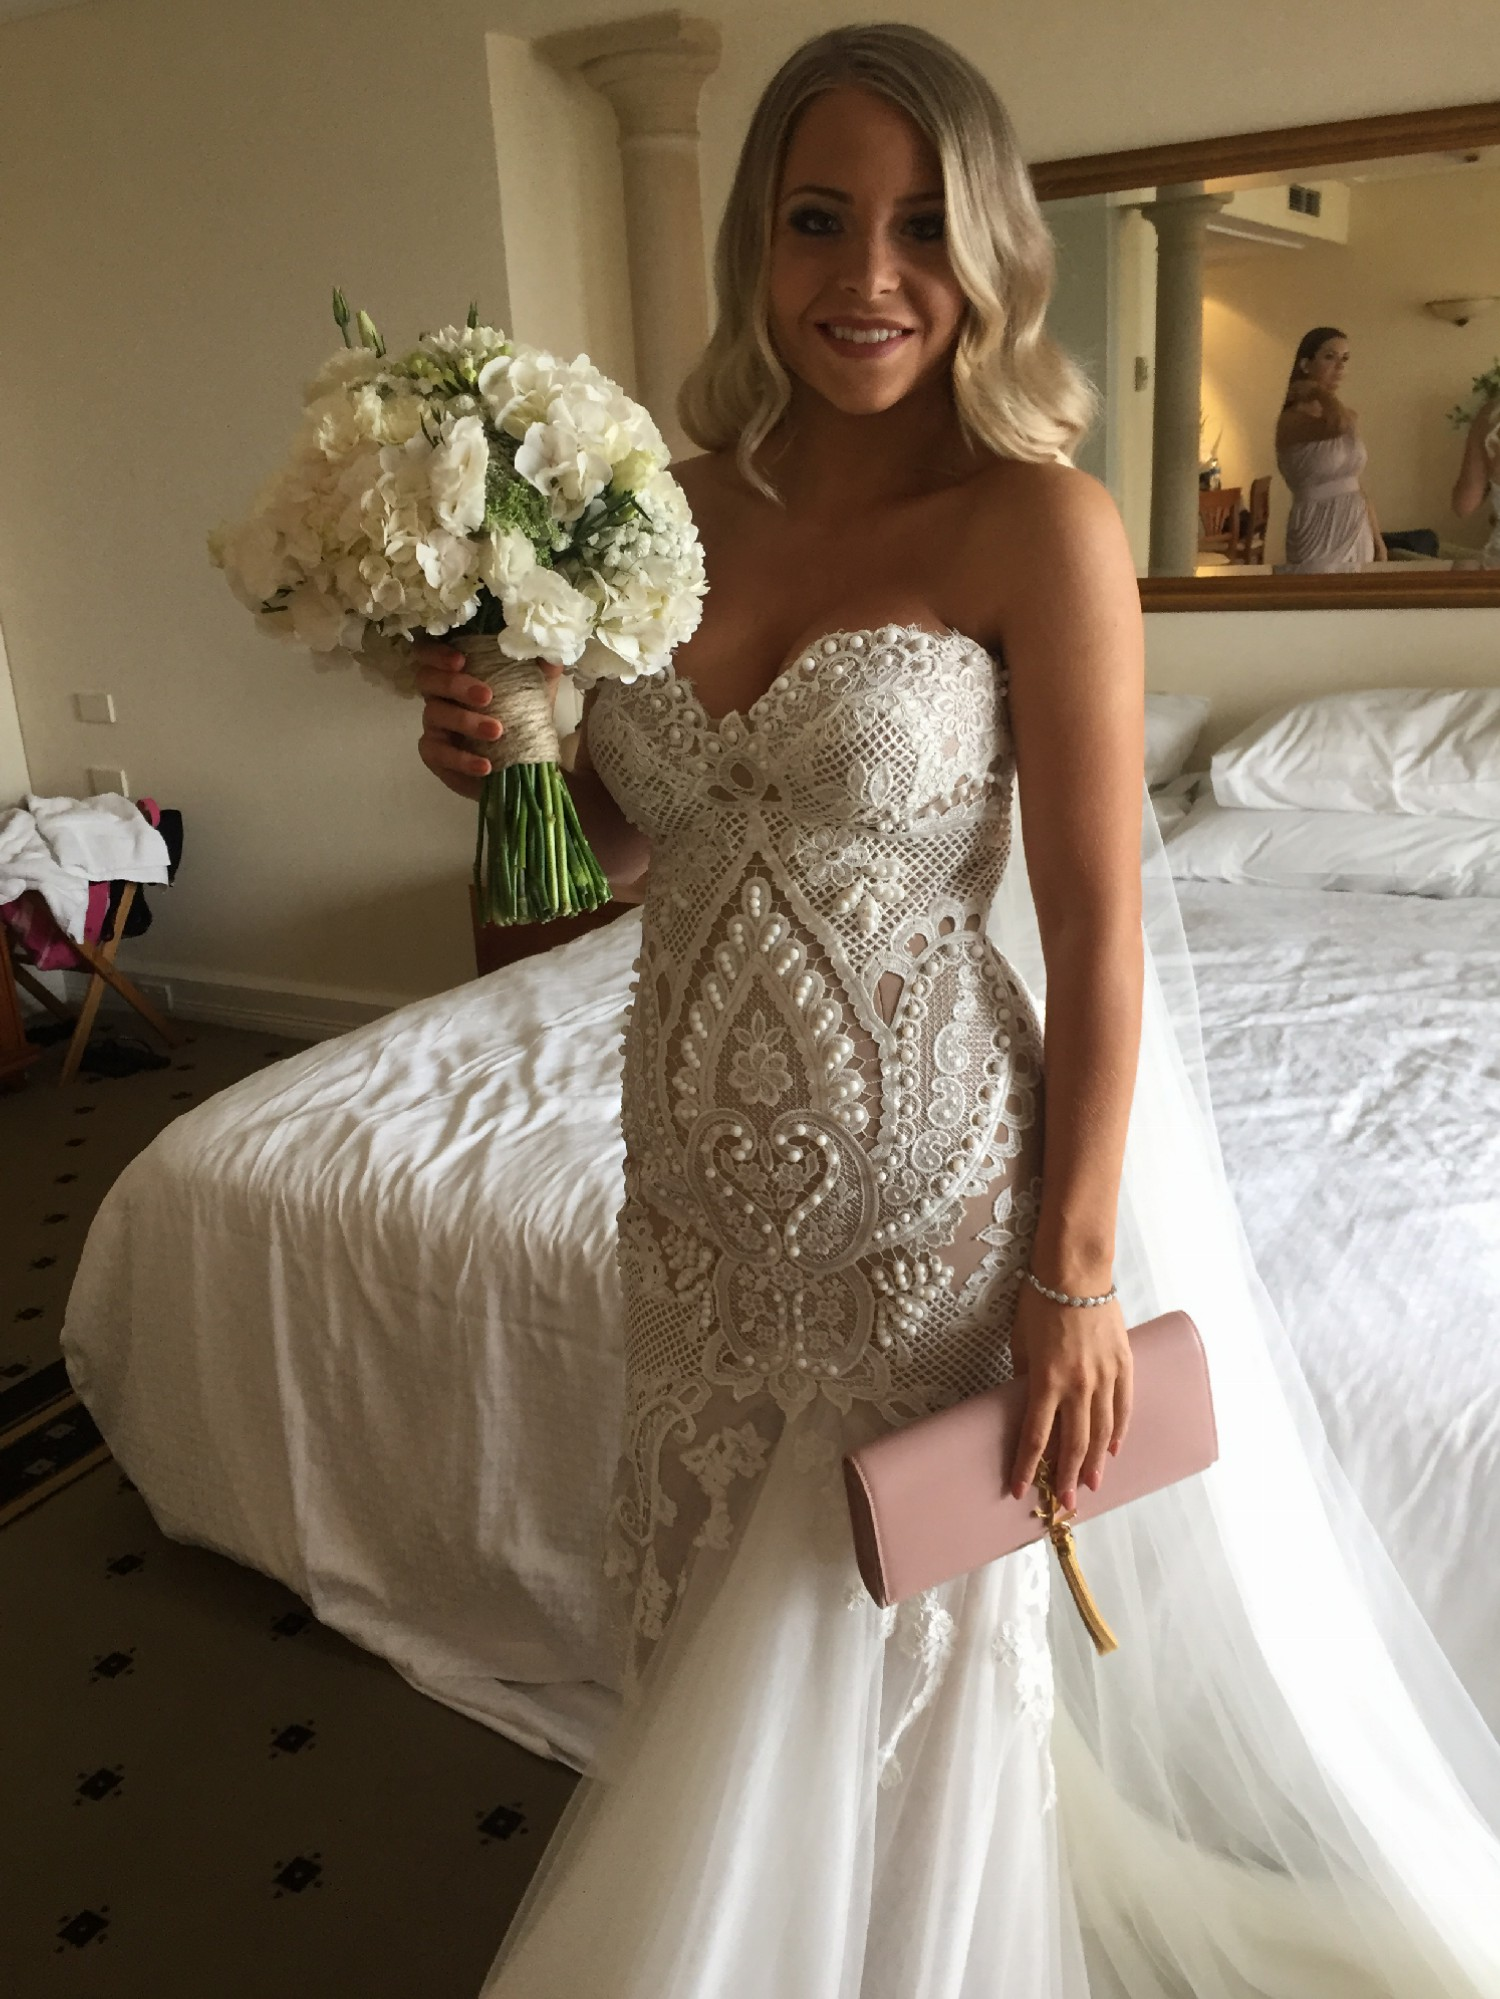 Leah da gloria customized emily gown used wedding dress on for Leah da gloria wedding dress cost